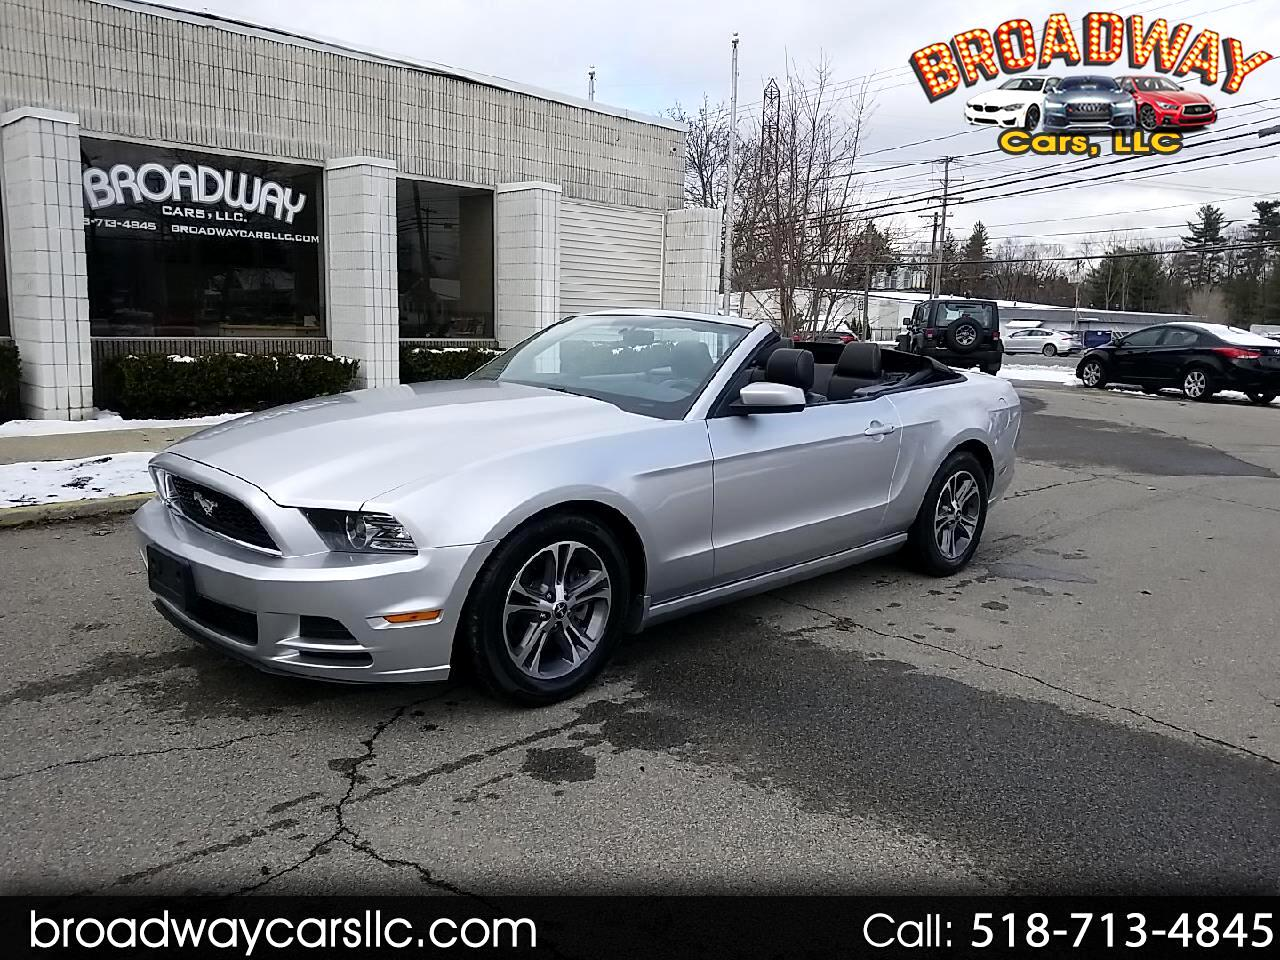 Ford Mustang 2dr Conv Premium 2014